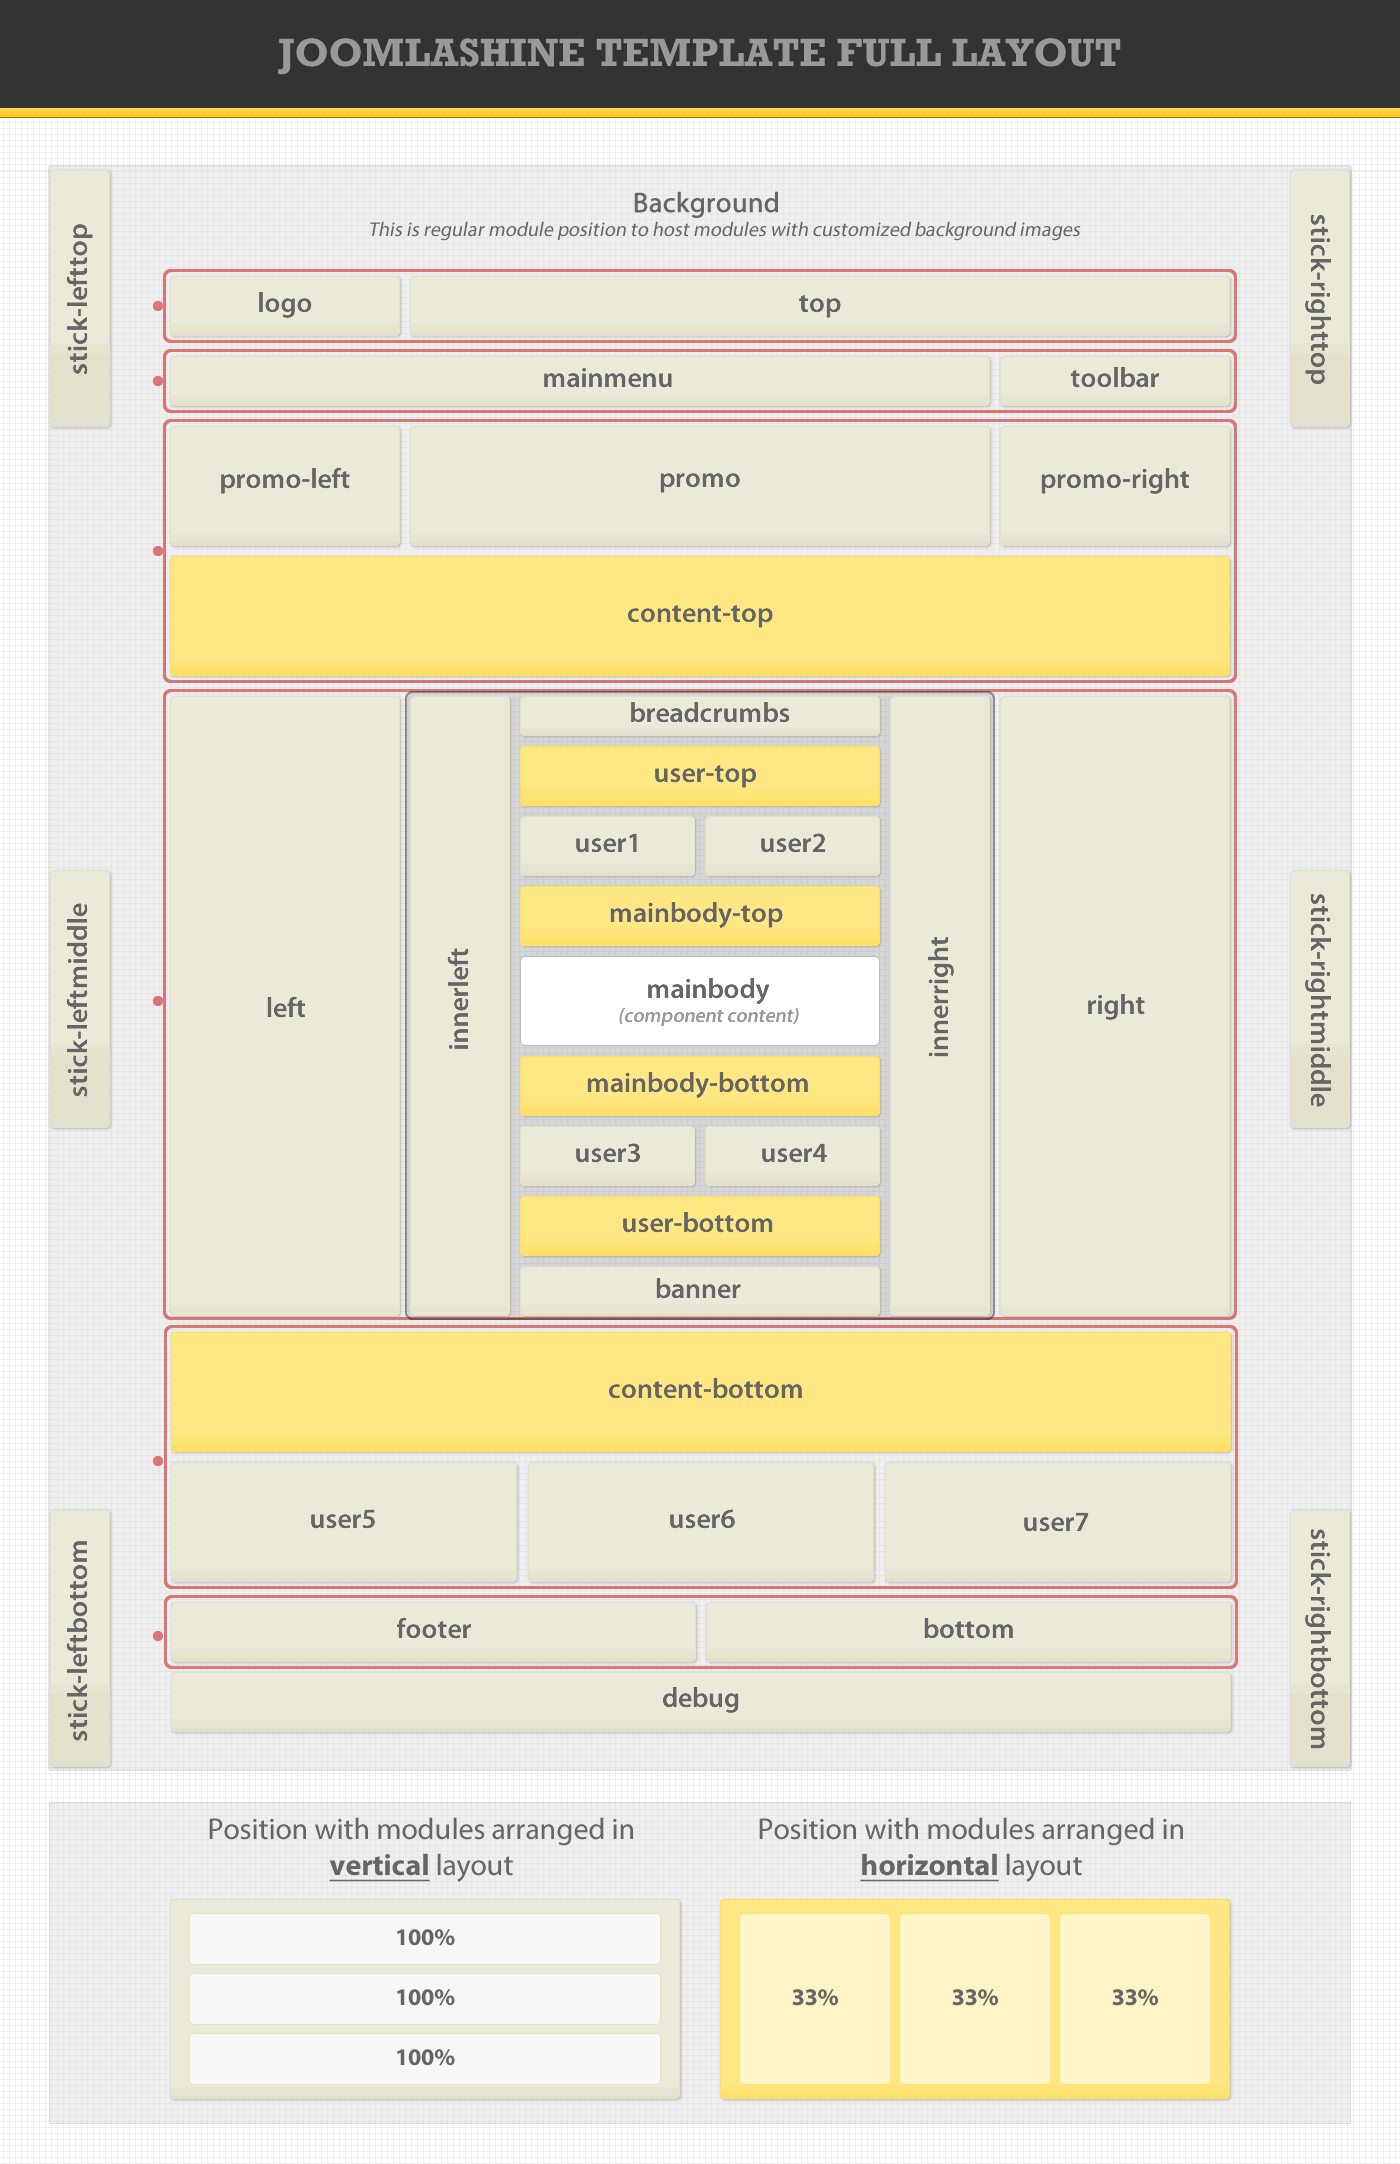 layout-full.png - 55.96 kb